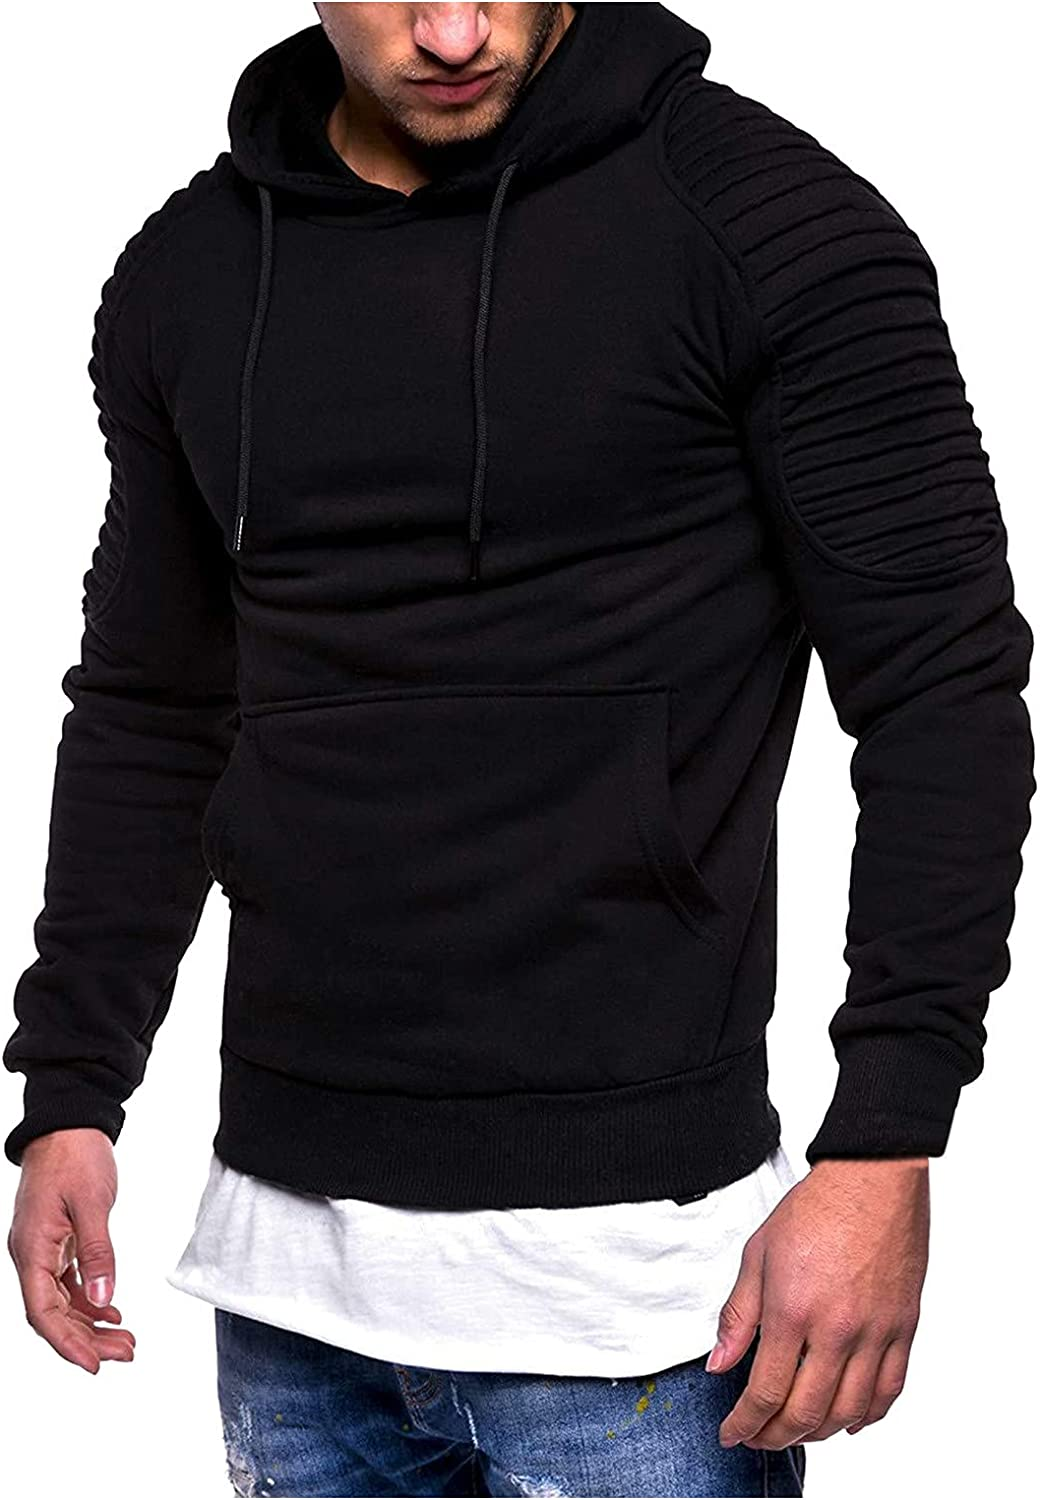 XXBR Pleated Hoodies for Mens, Fall Solid Drawstring Hooded Sweatshirts Slim Fit Athletic Casual Pullover with Pocket